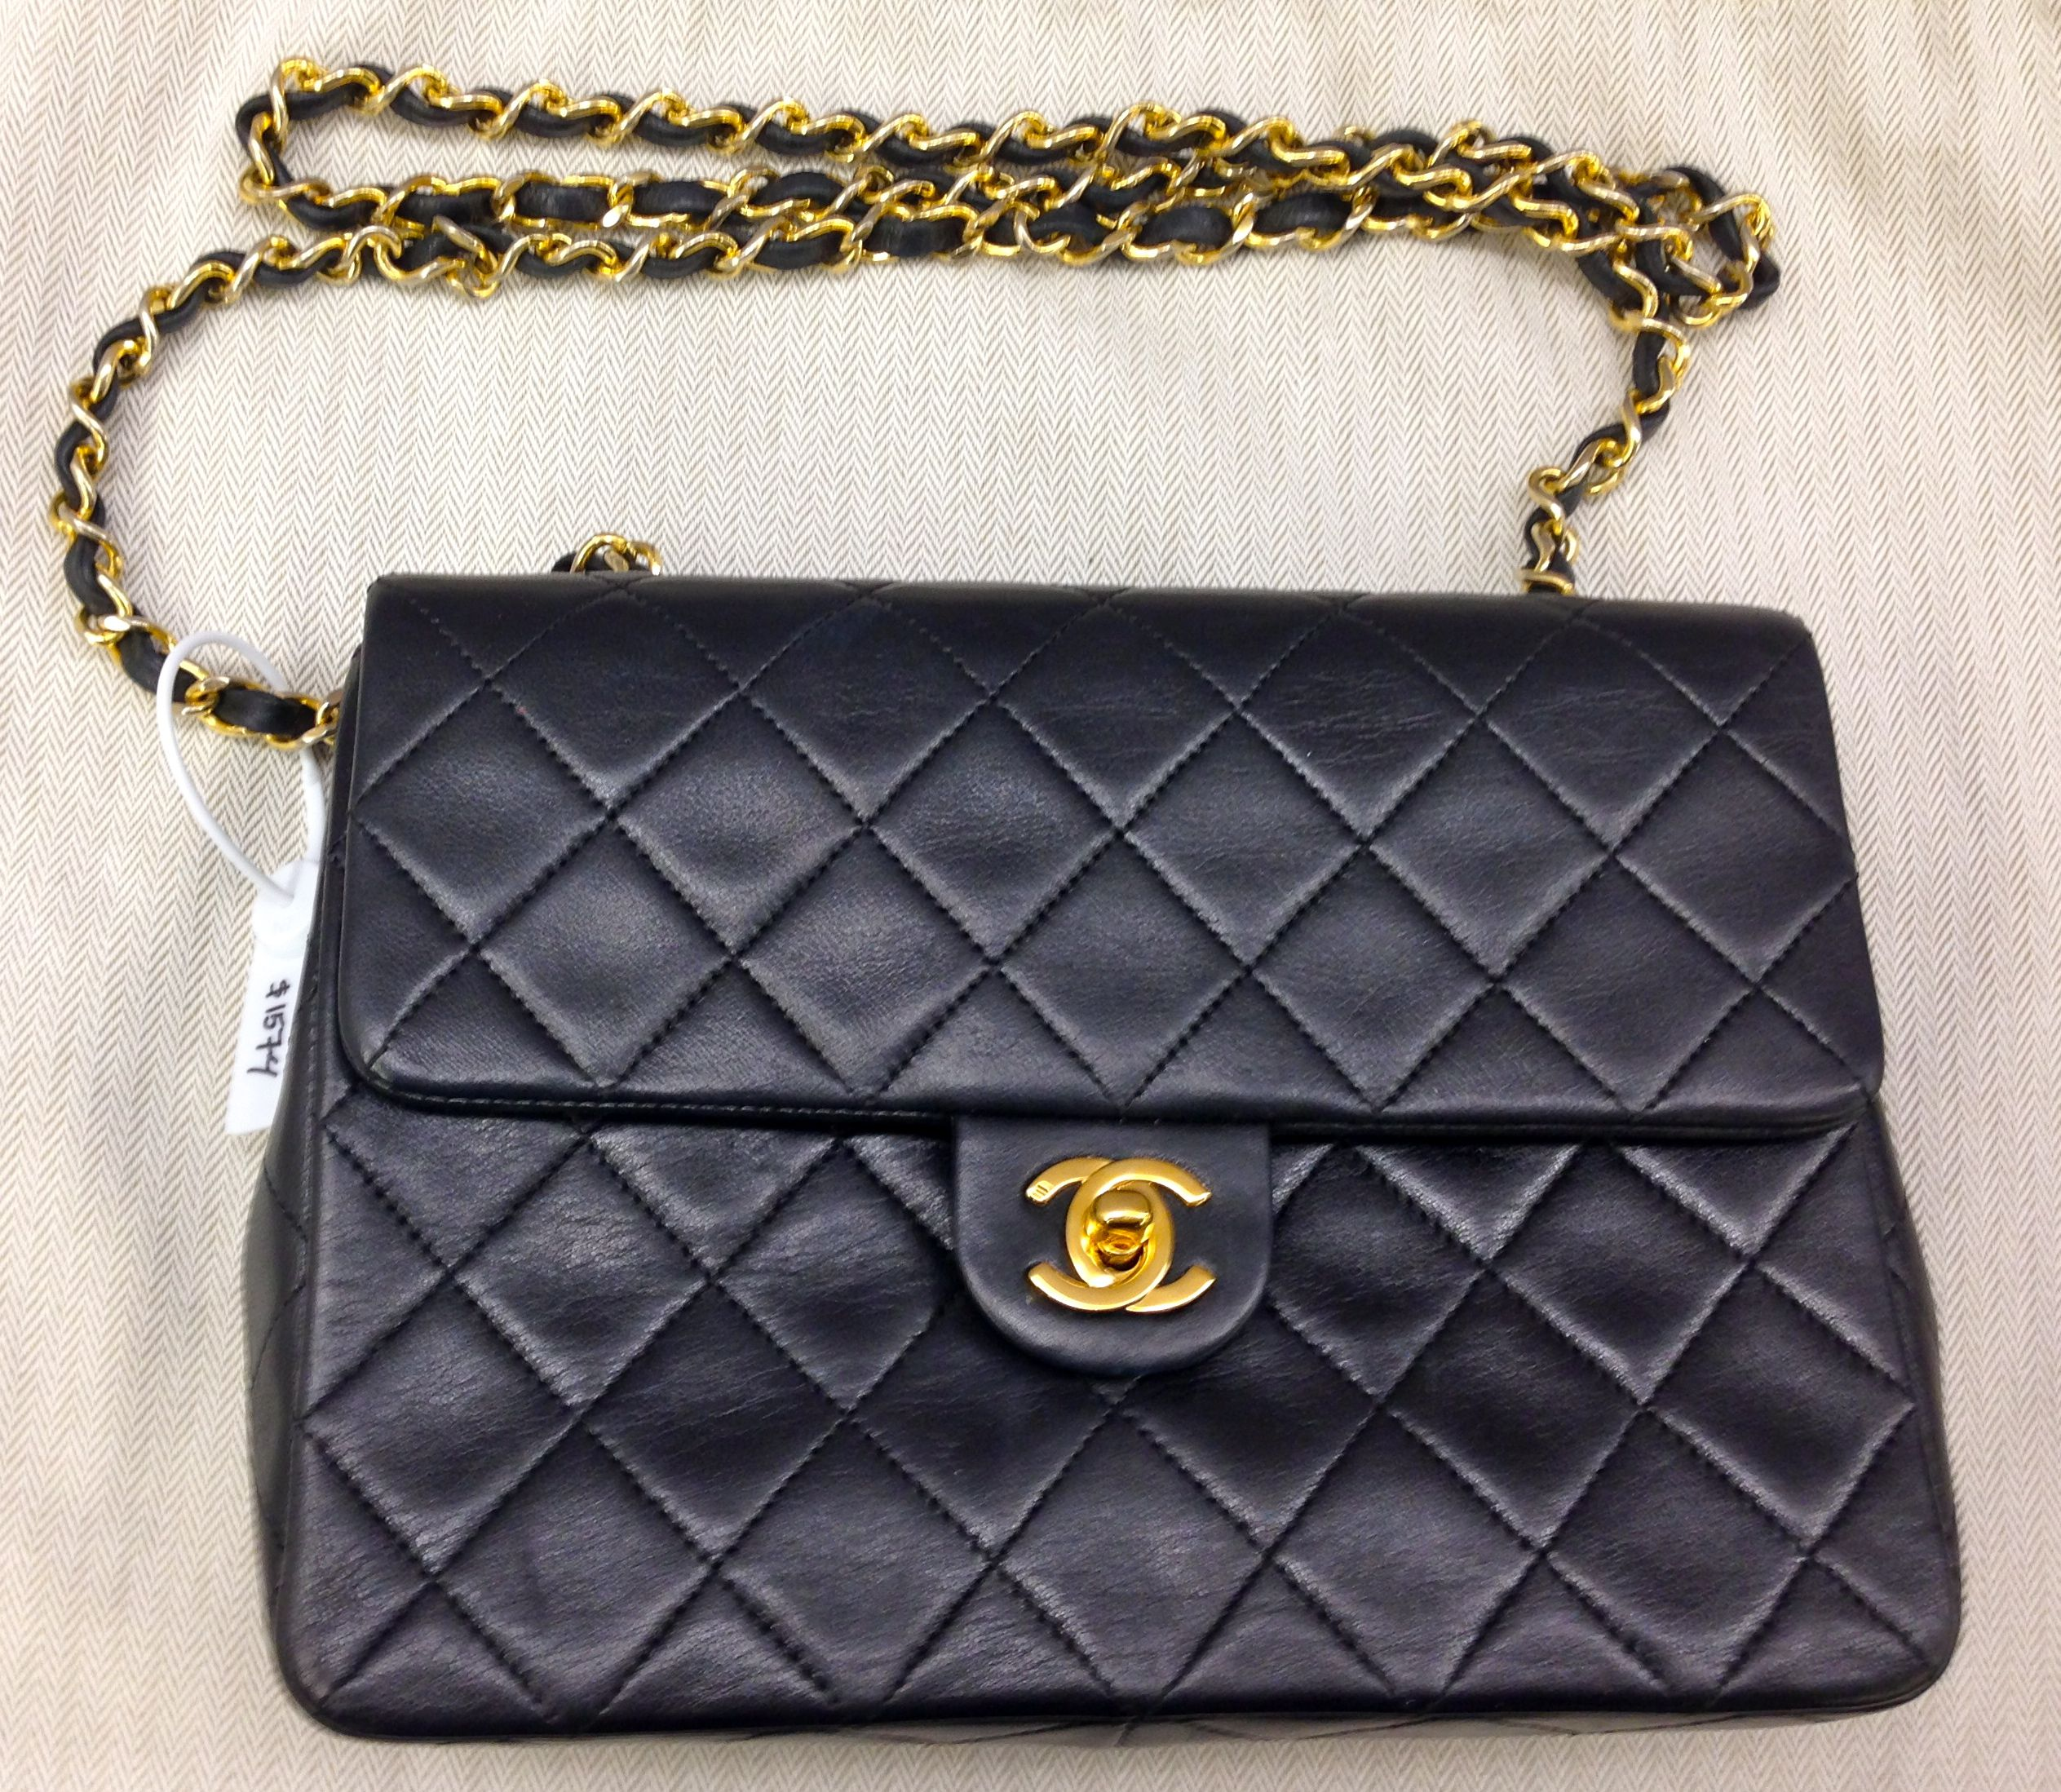 6f067cf20526c9 Chanel Handbags: How to Tell if It's Real or Fake